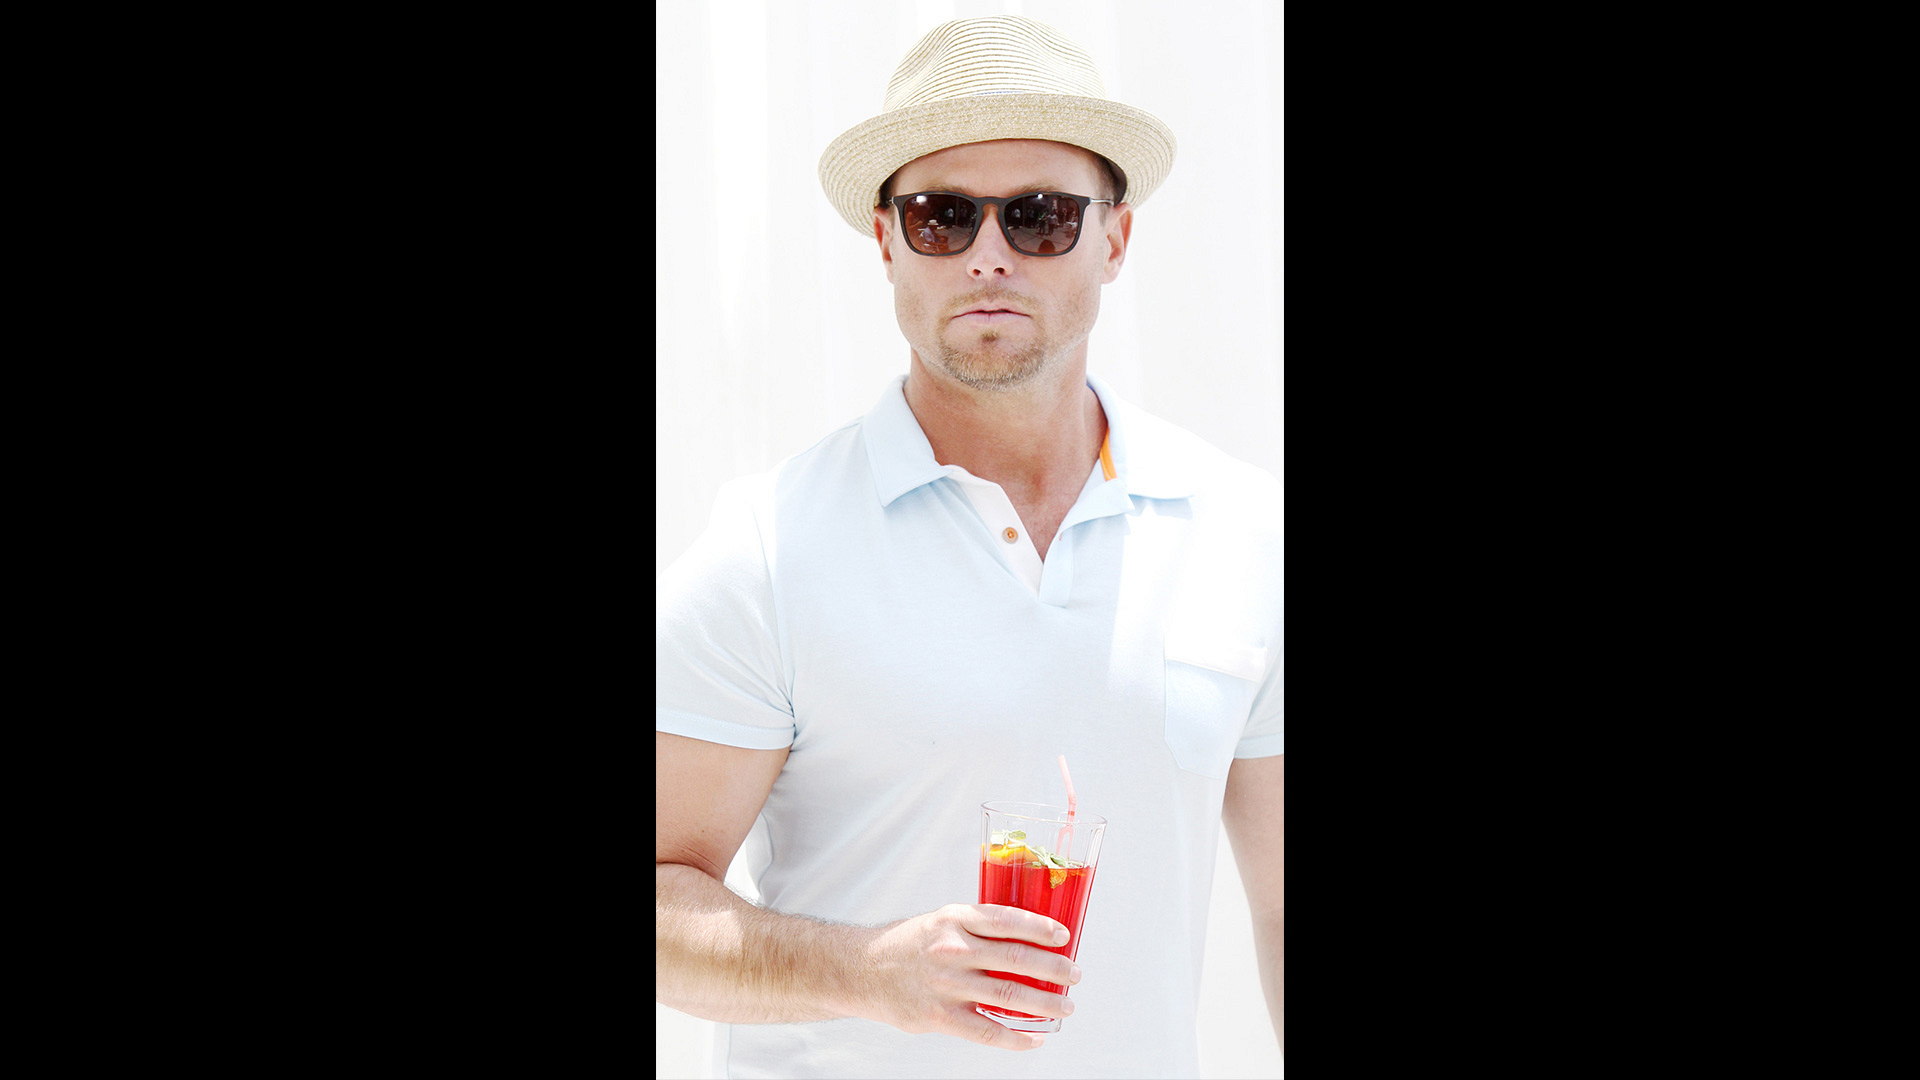 Jacob Young cools off with a fedora, shades, and delicious-looking beverage.